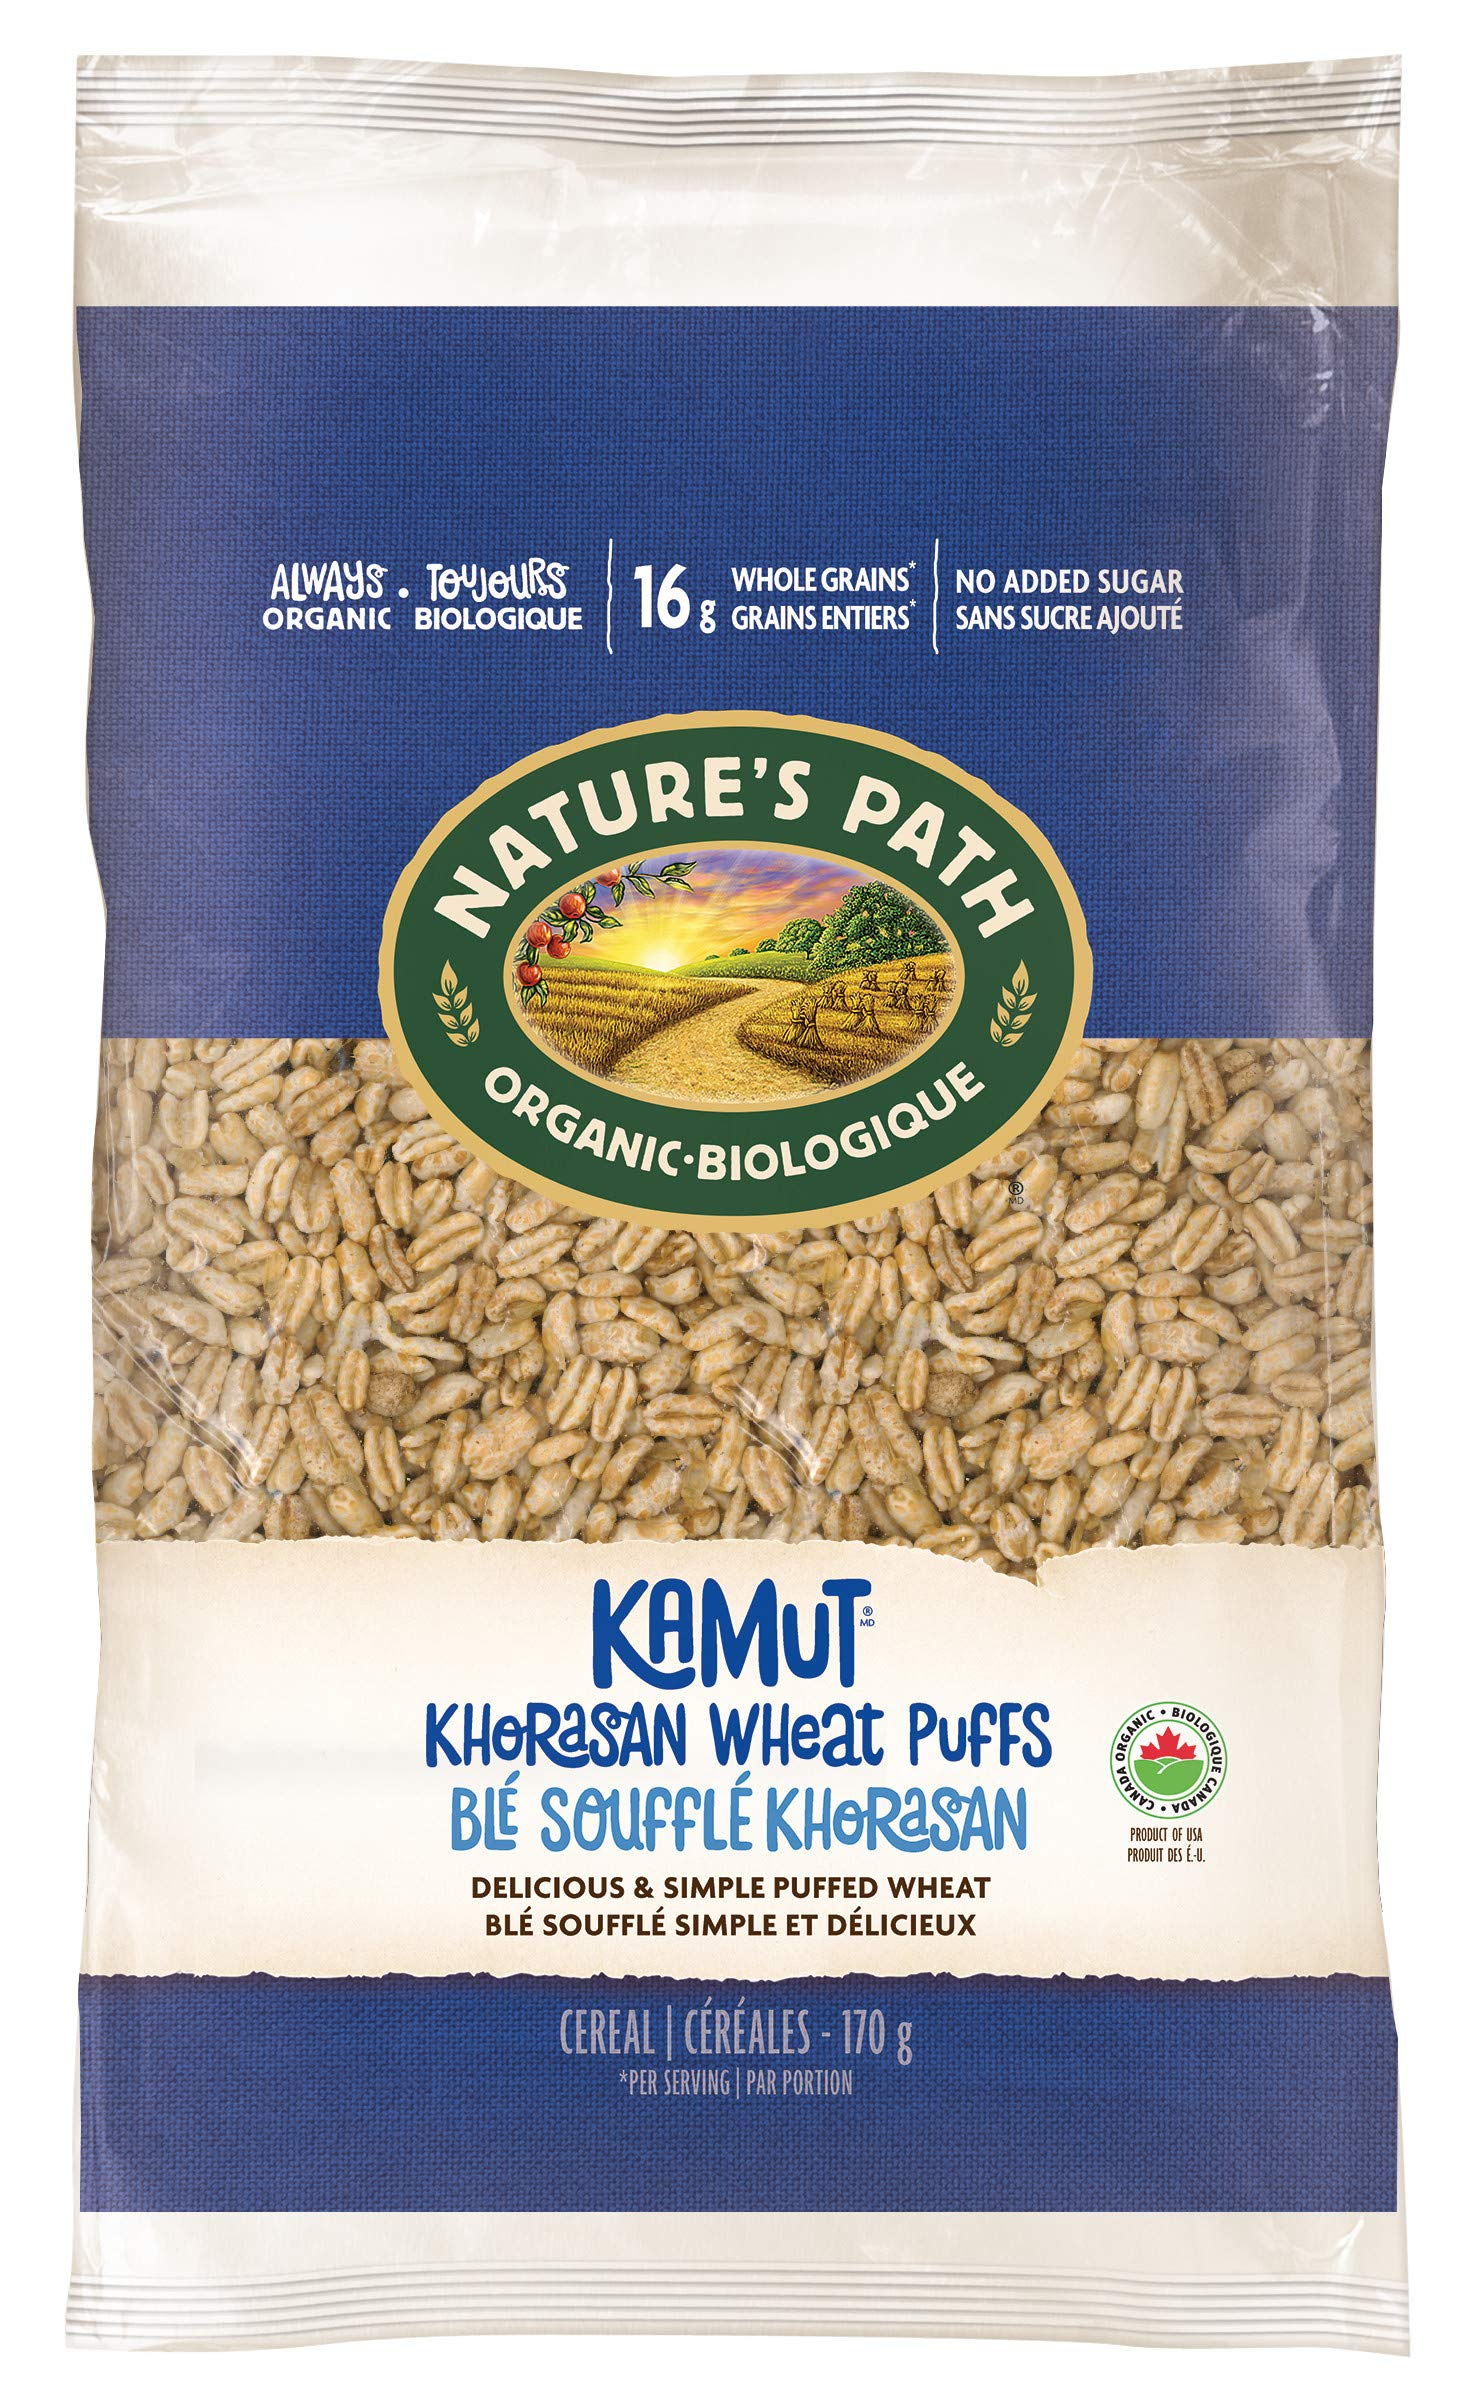 Nature's Path KAMUT Khorasan Wheat Puffs Cereal, Healthy, Organic, Gluten-Free, Low-Sugar, 6 Ounce Bag (Pack of 12) by Nature's Path